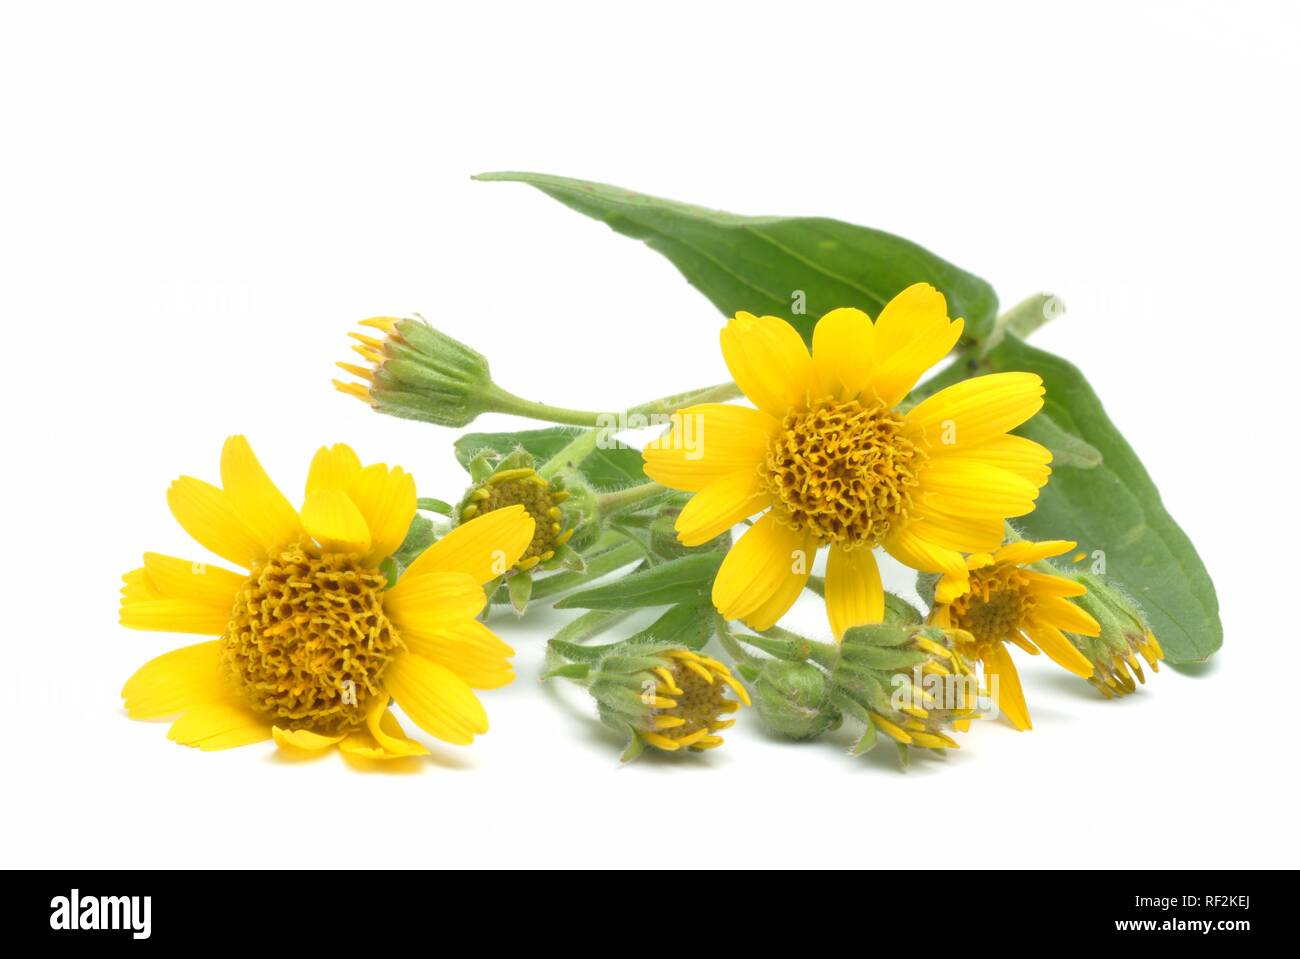 Mountain Tobacco, Wolfs´s Bane or Leopard's Bane (Arnica montana), medicinal plant - Stock Image